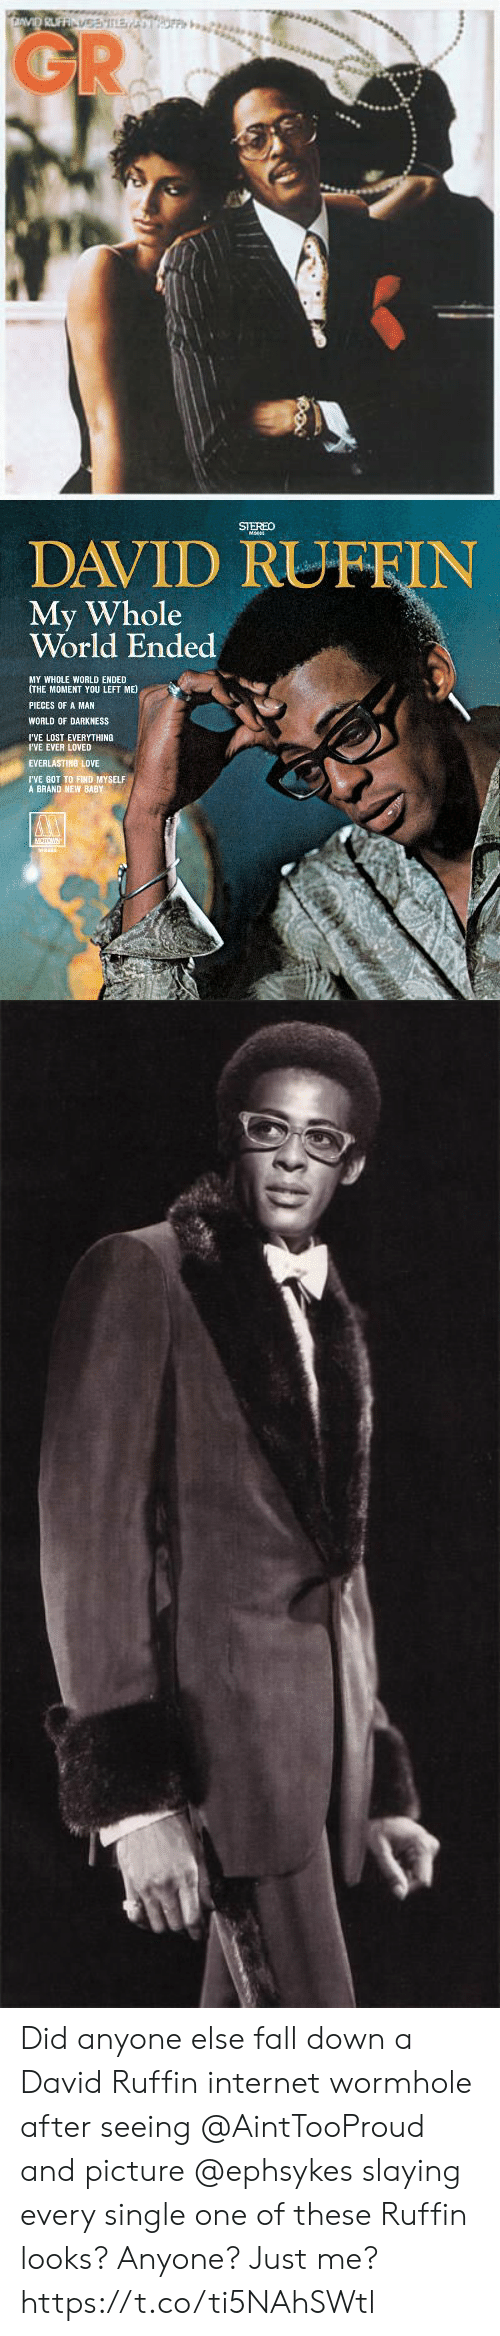 world of darkness: GR   STEREO  DAVID RUFFIN  My Whole  World Ended  MY WHOLE WORLD ENDED  (THE MOMENT YOU LEFT ME  PIECES OF A MAN  WORLD OF DARKNESS  I'VE LOST EVERYTHING  IVE EVER LOVED  EVERLASTING LOVE  TVE GOT TO FIND MYSELF  A BRAND NEW BABY Did anyone else fall down a David Ruffin internet wormhole after seeing @AintTooProud and picture @ephsykes slaying every single one of these Ruffin looks? Anyone? Just me? https://t.co/ti5NAhSWtl